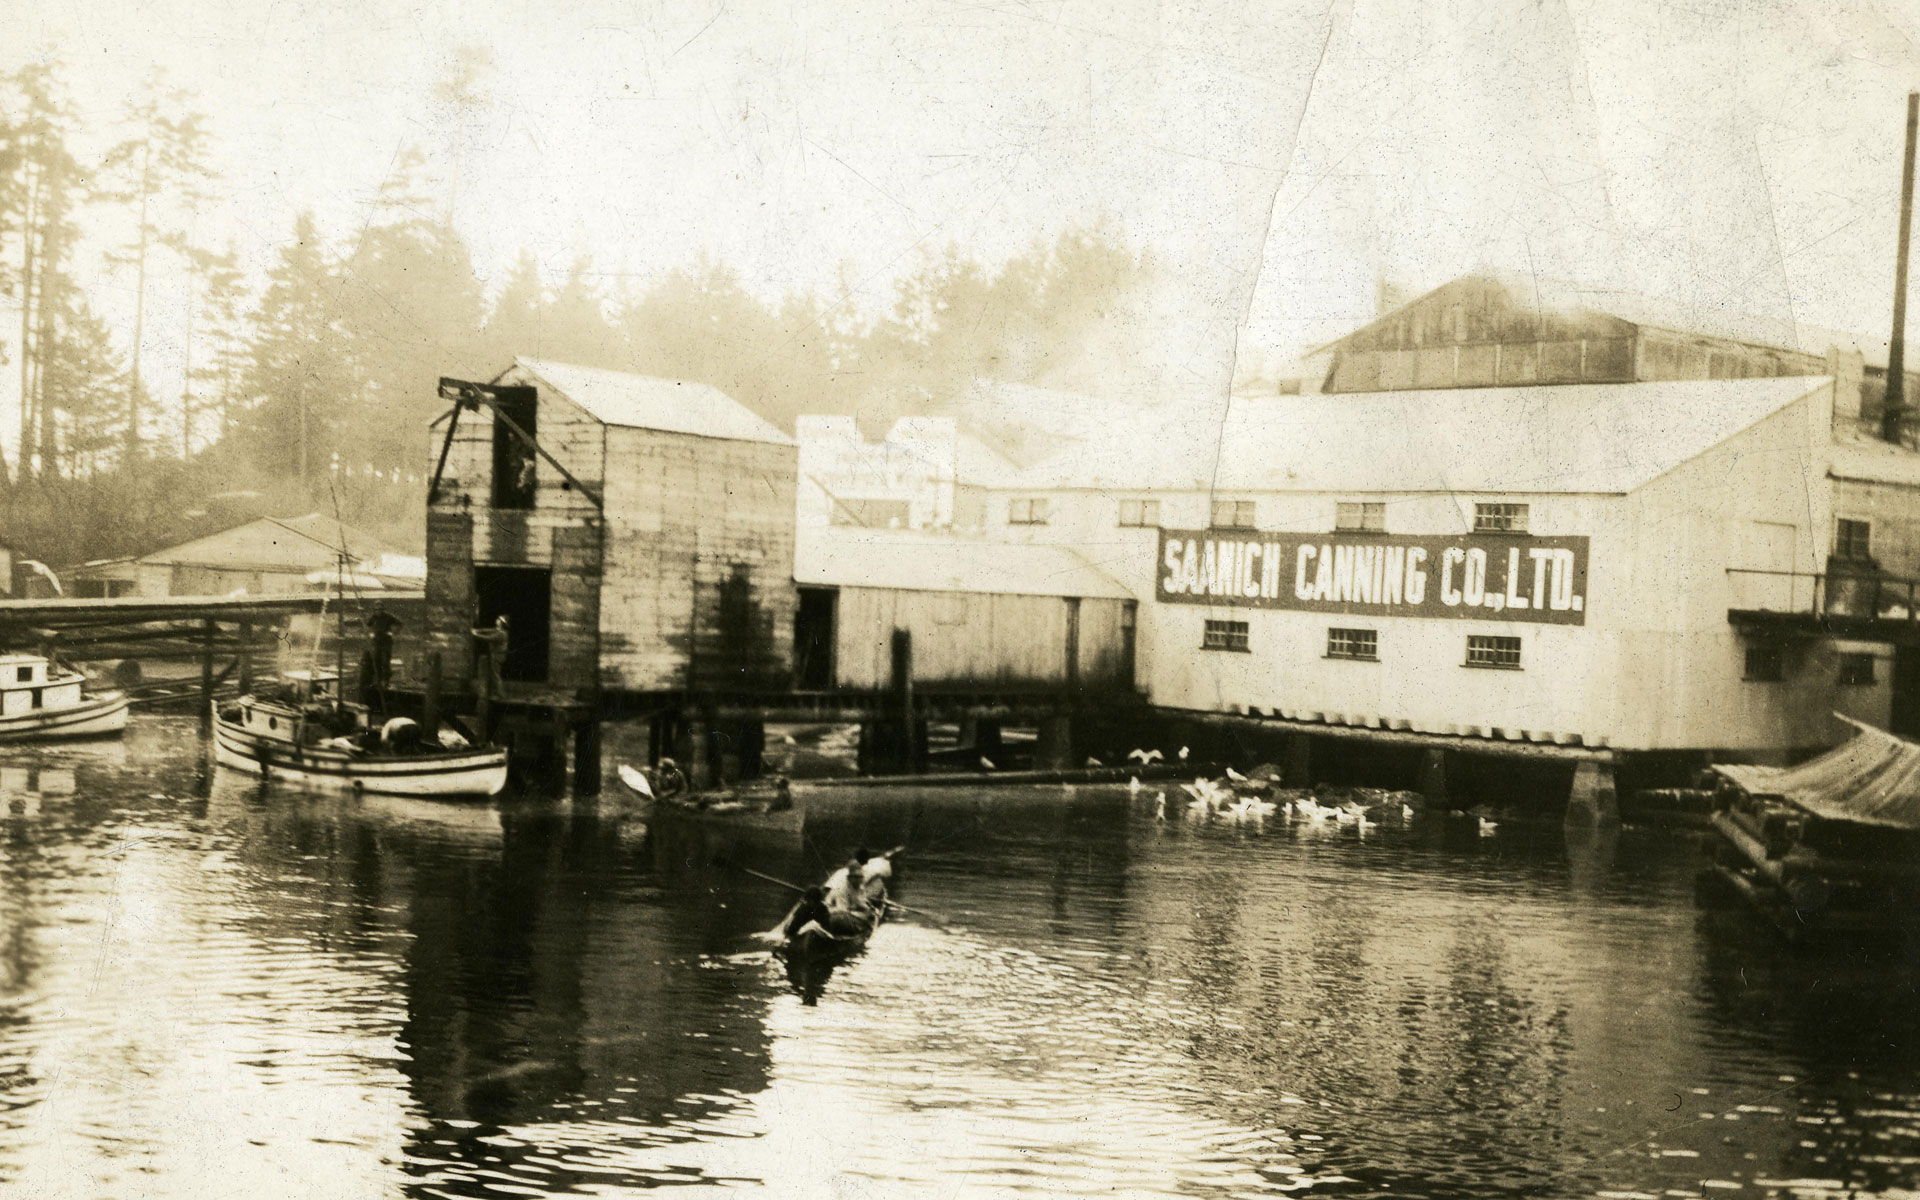 Cannery buildings viewed from the water with skiffs in the foreground.